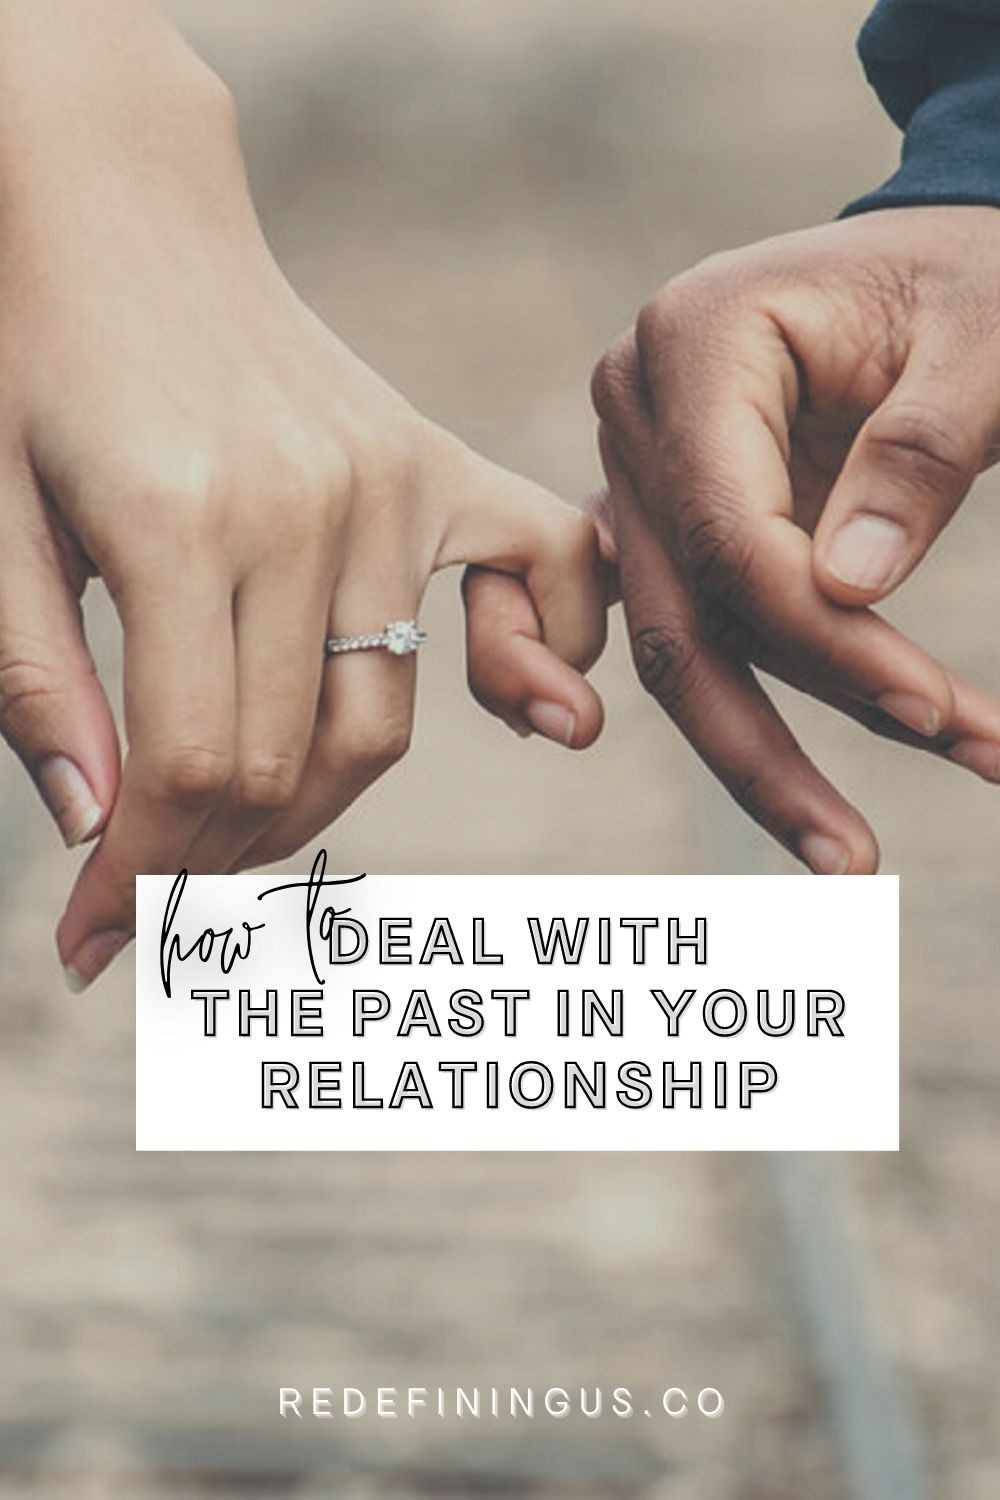 How to Deal with the Past in Your Relationship